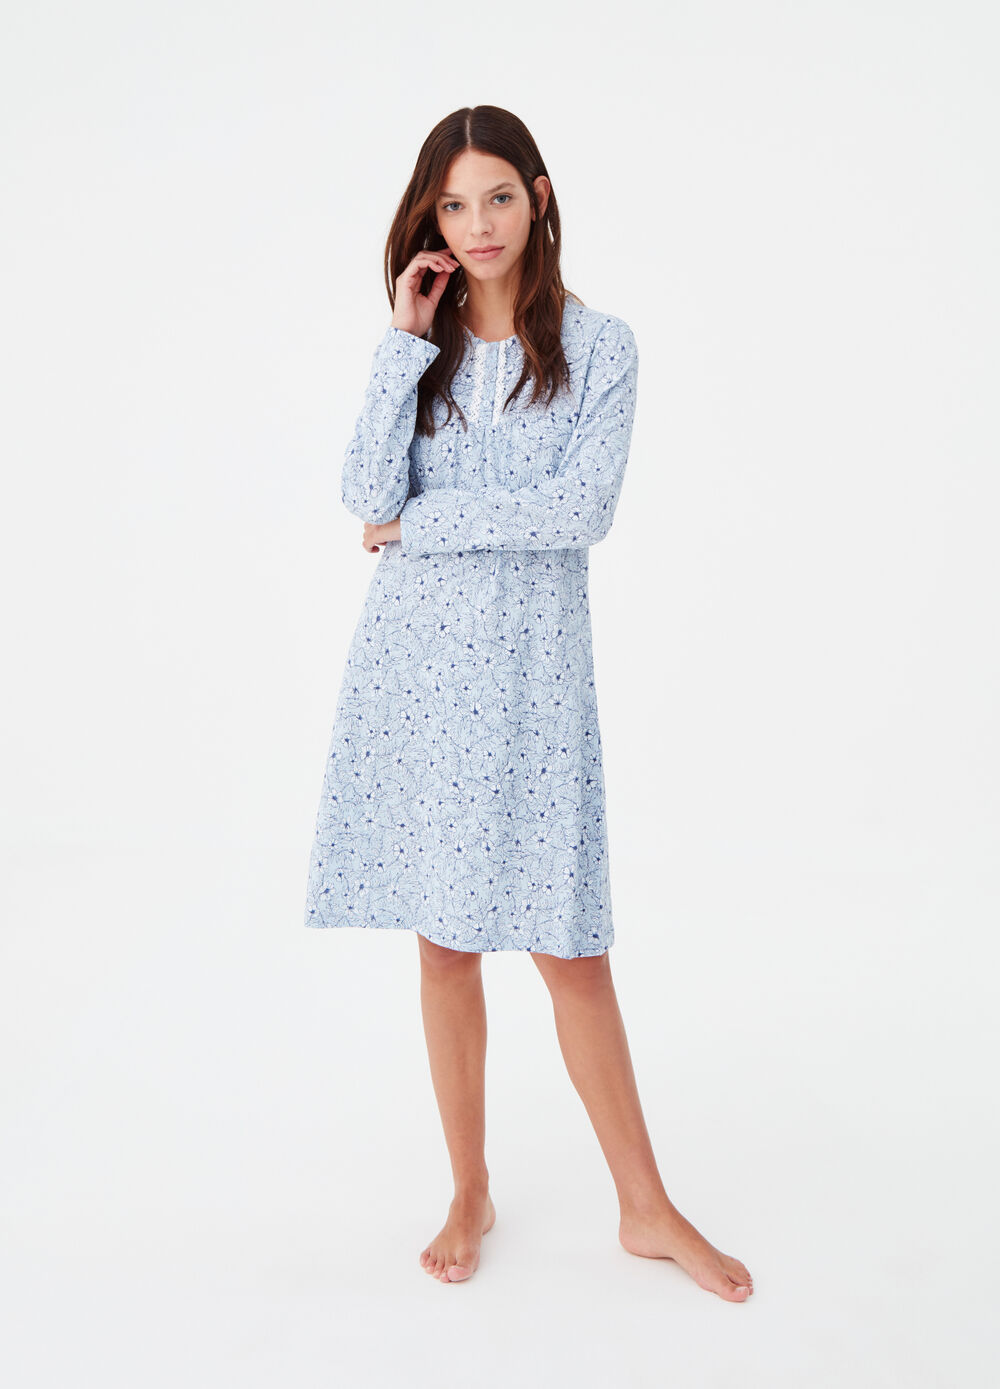 100% cotton patterned nightshirt